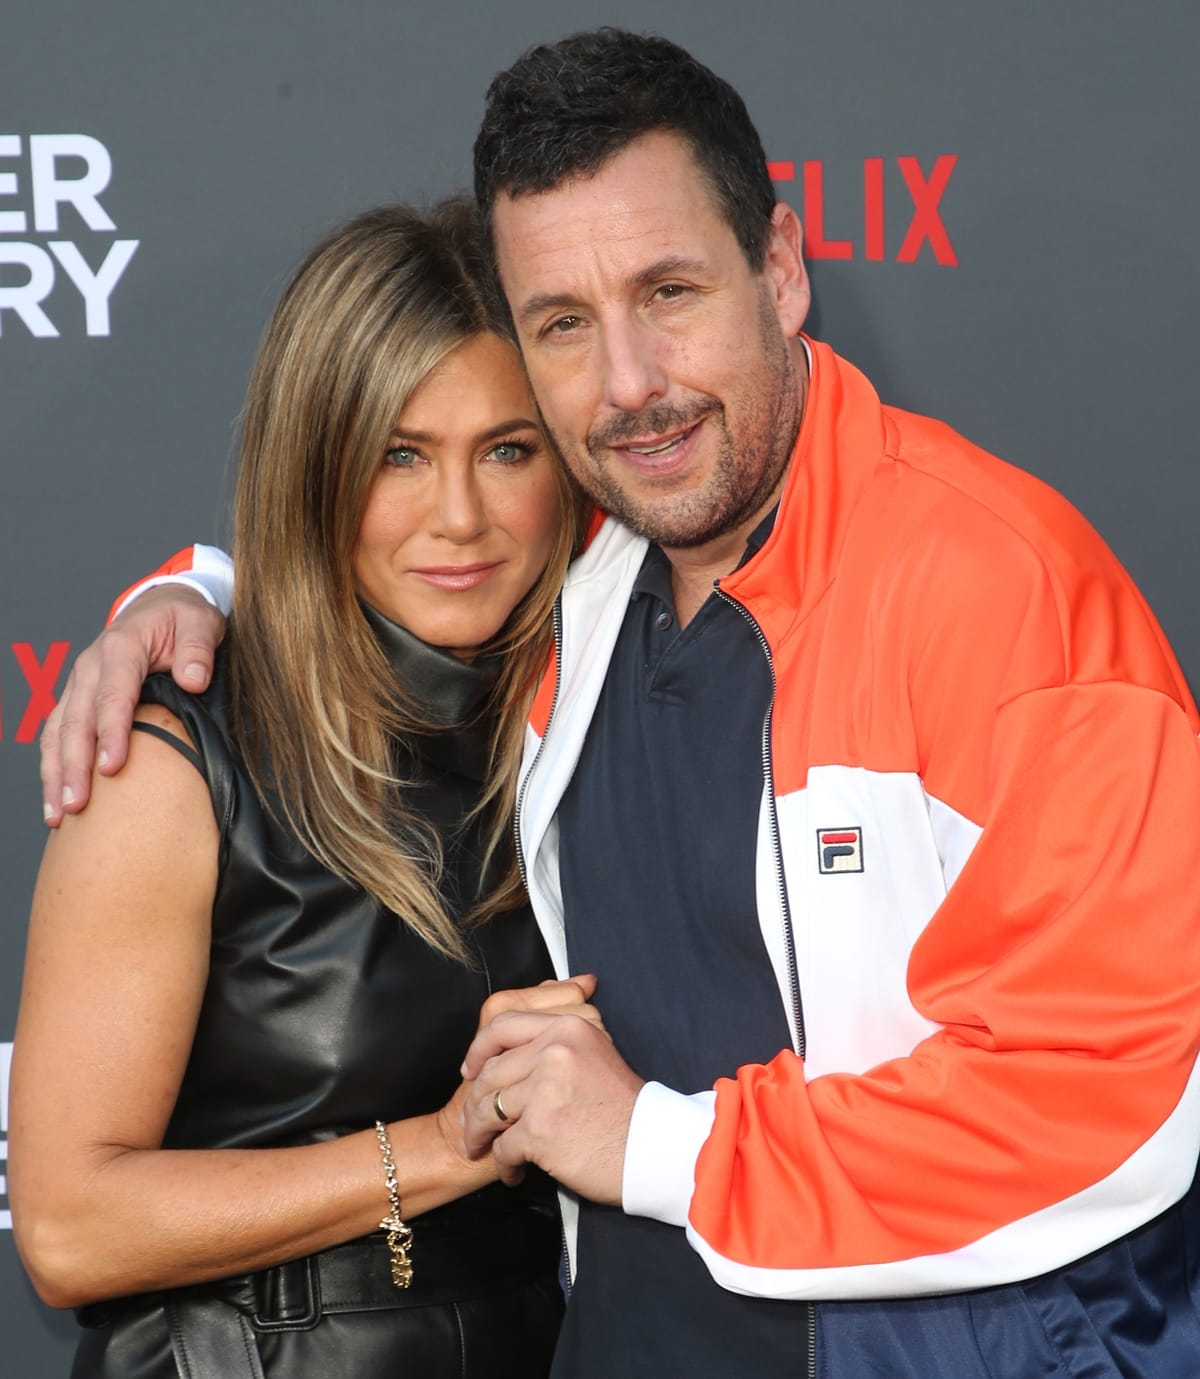 Adam Sandler's wife taught him how to kiss his Murder Mystery co-star Jennifer Aniston